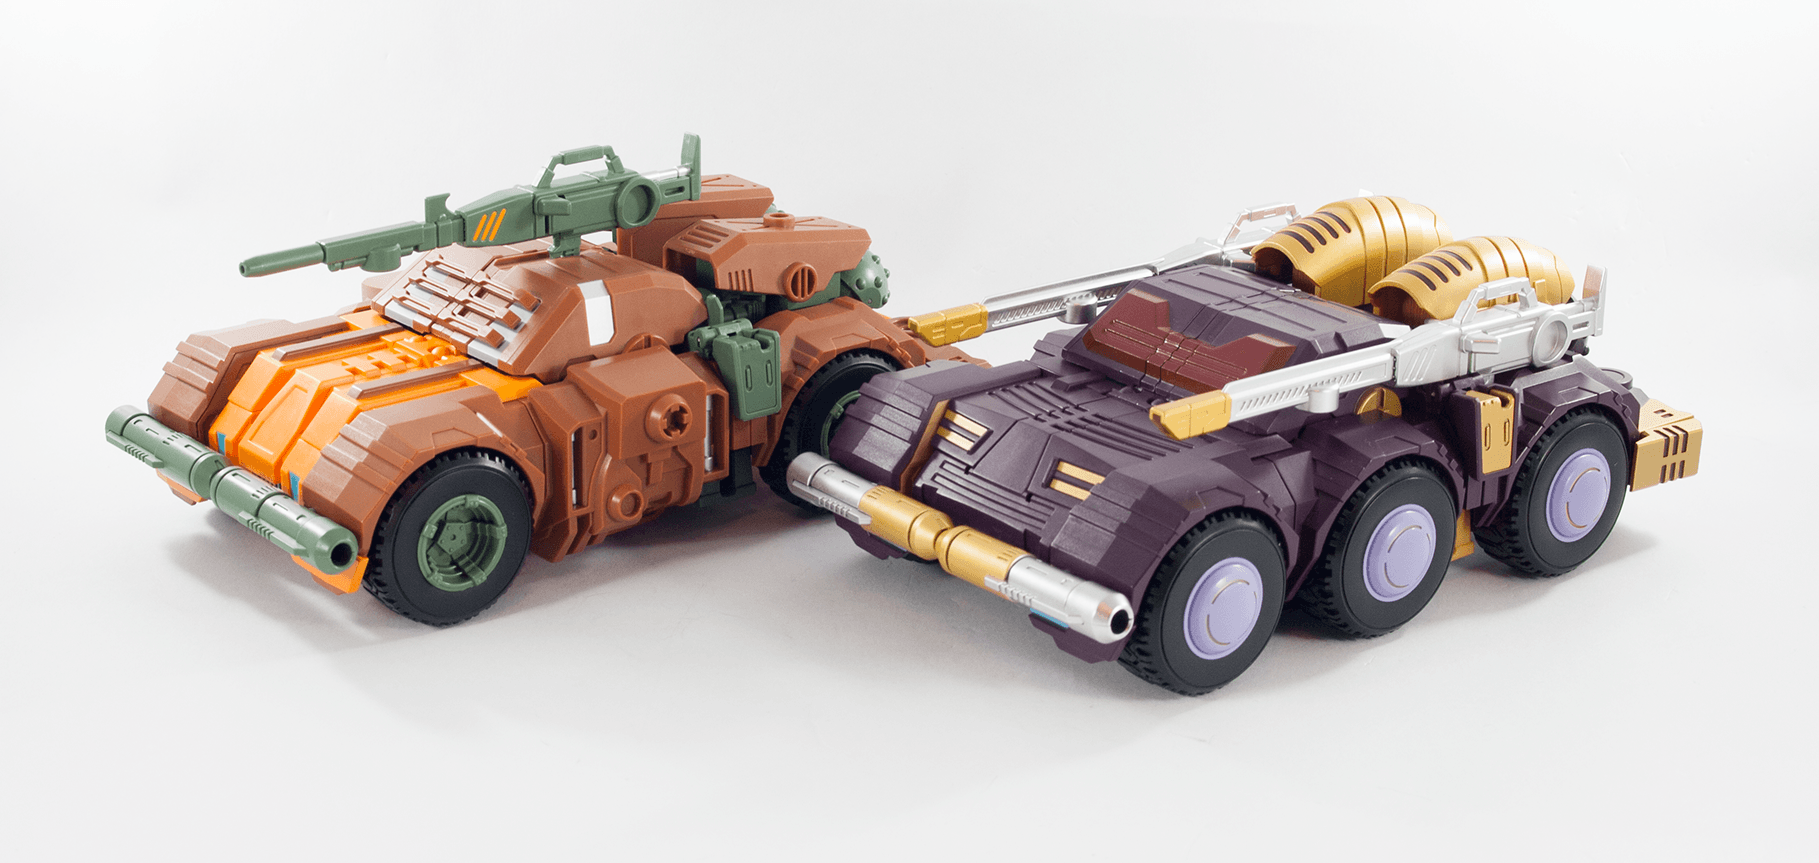 Roadbuster and Strika alt modes